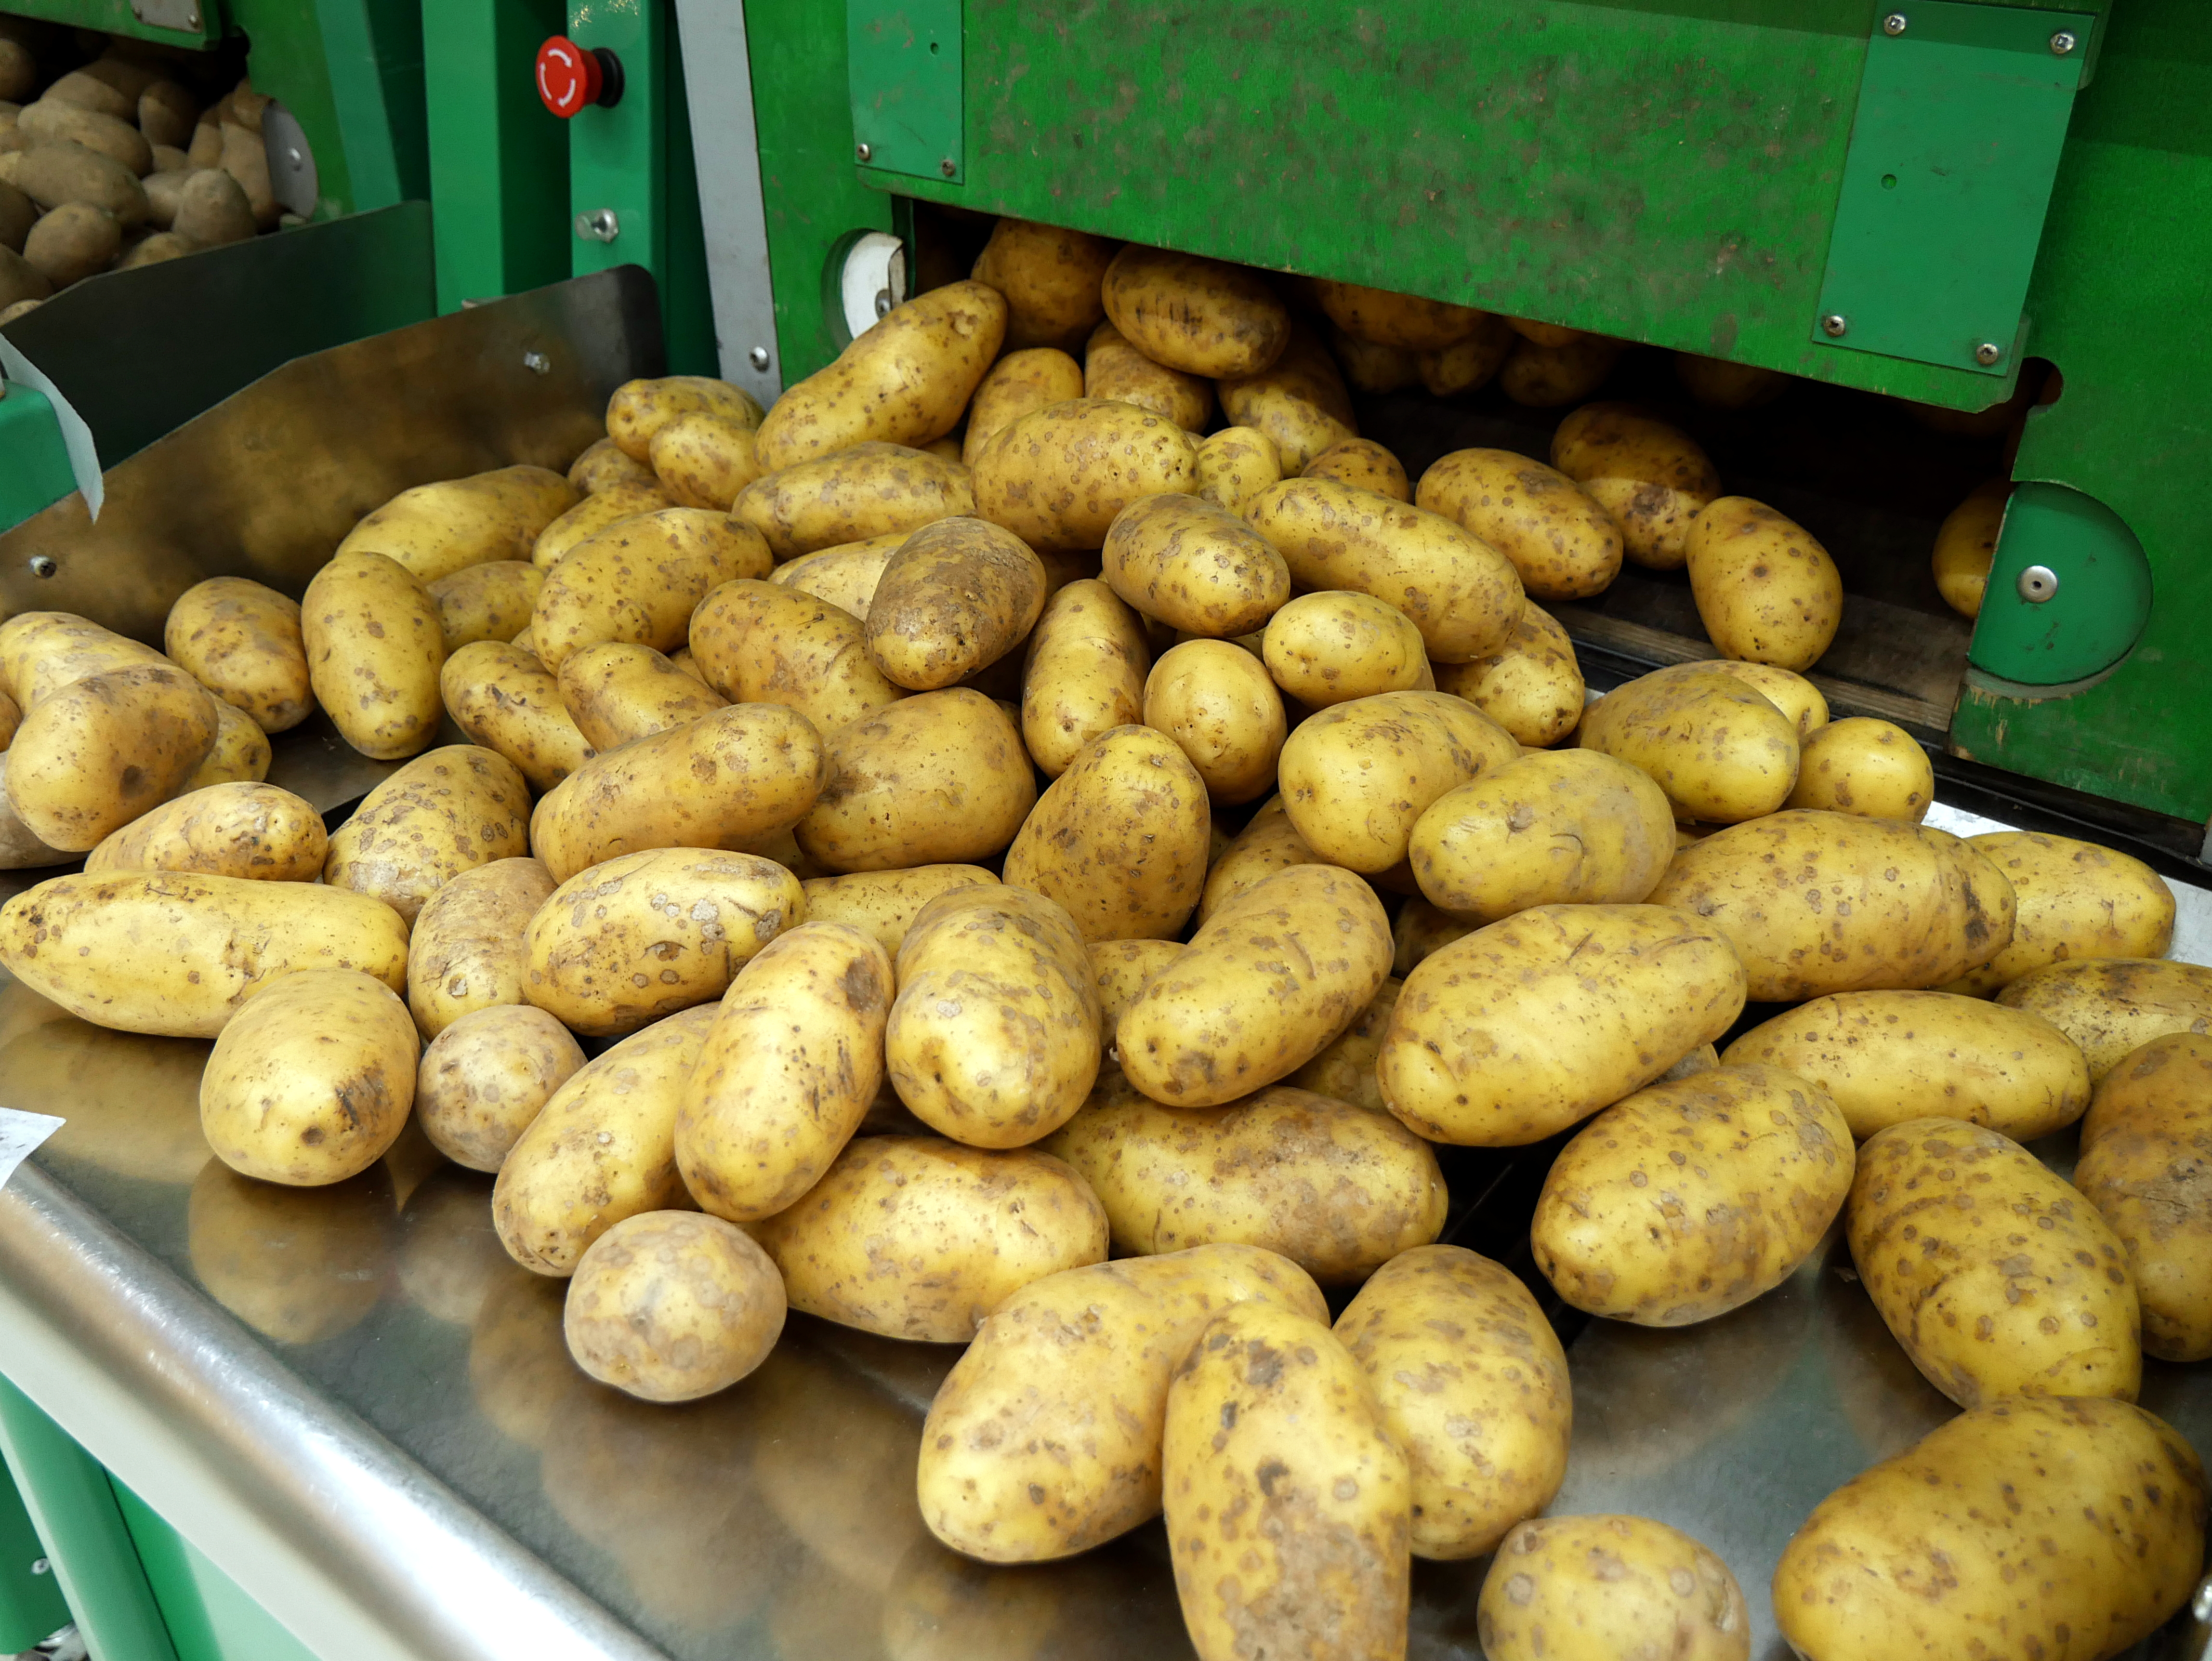 File:Potatoes in grocery store jpg - Wikimedia Commons